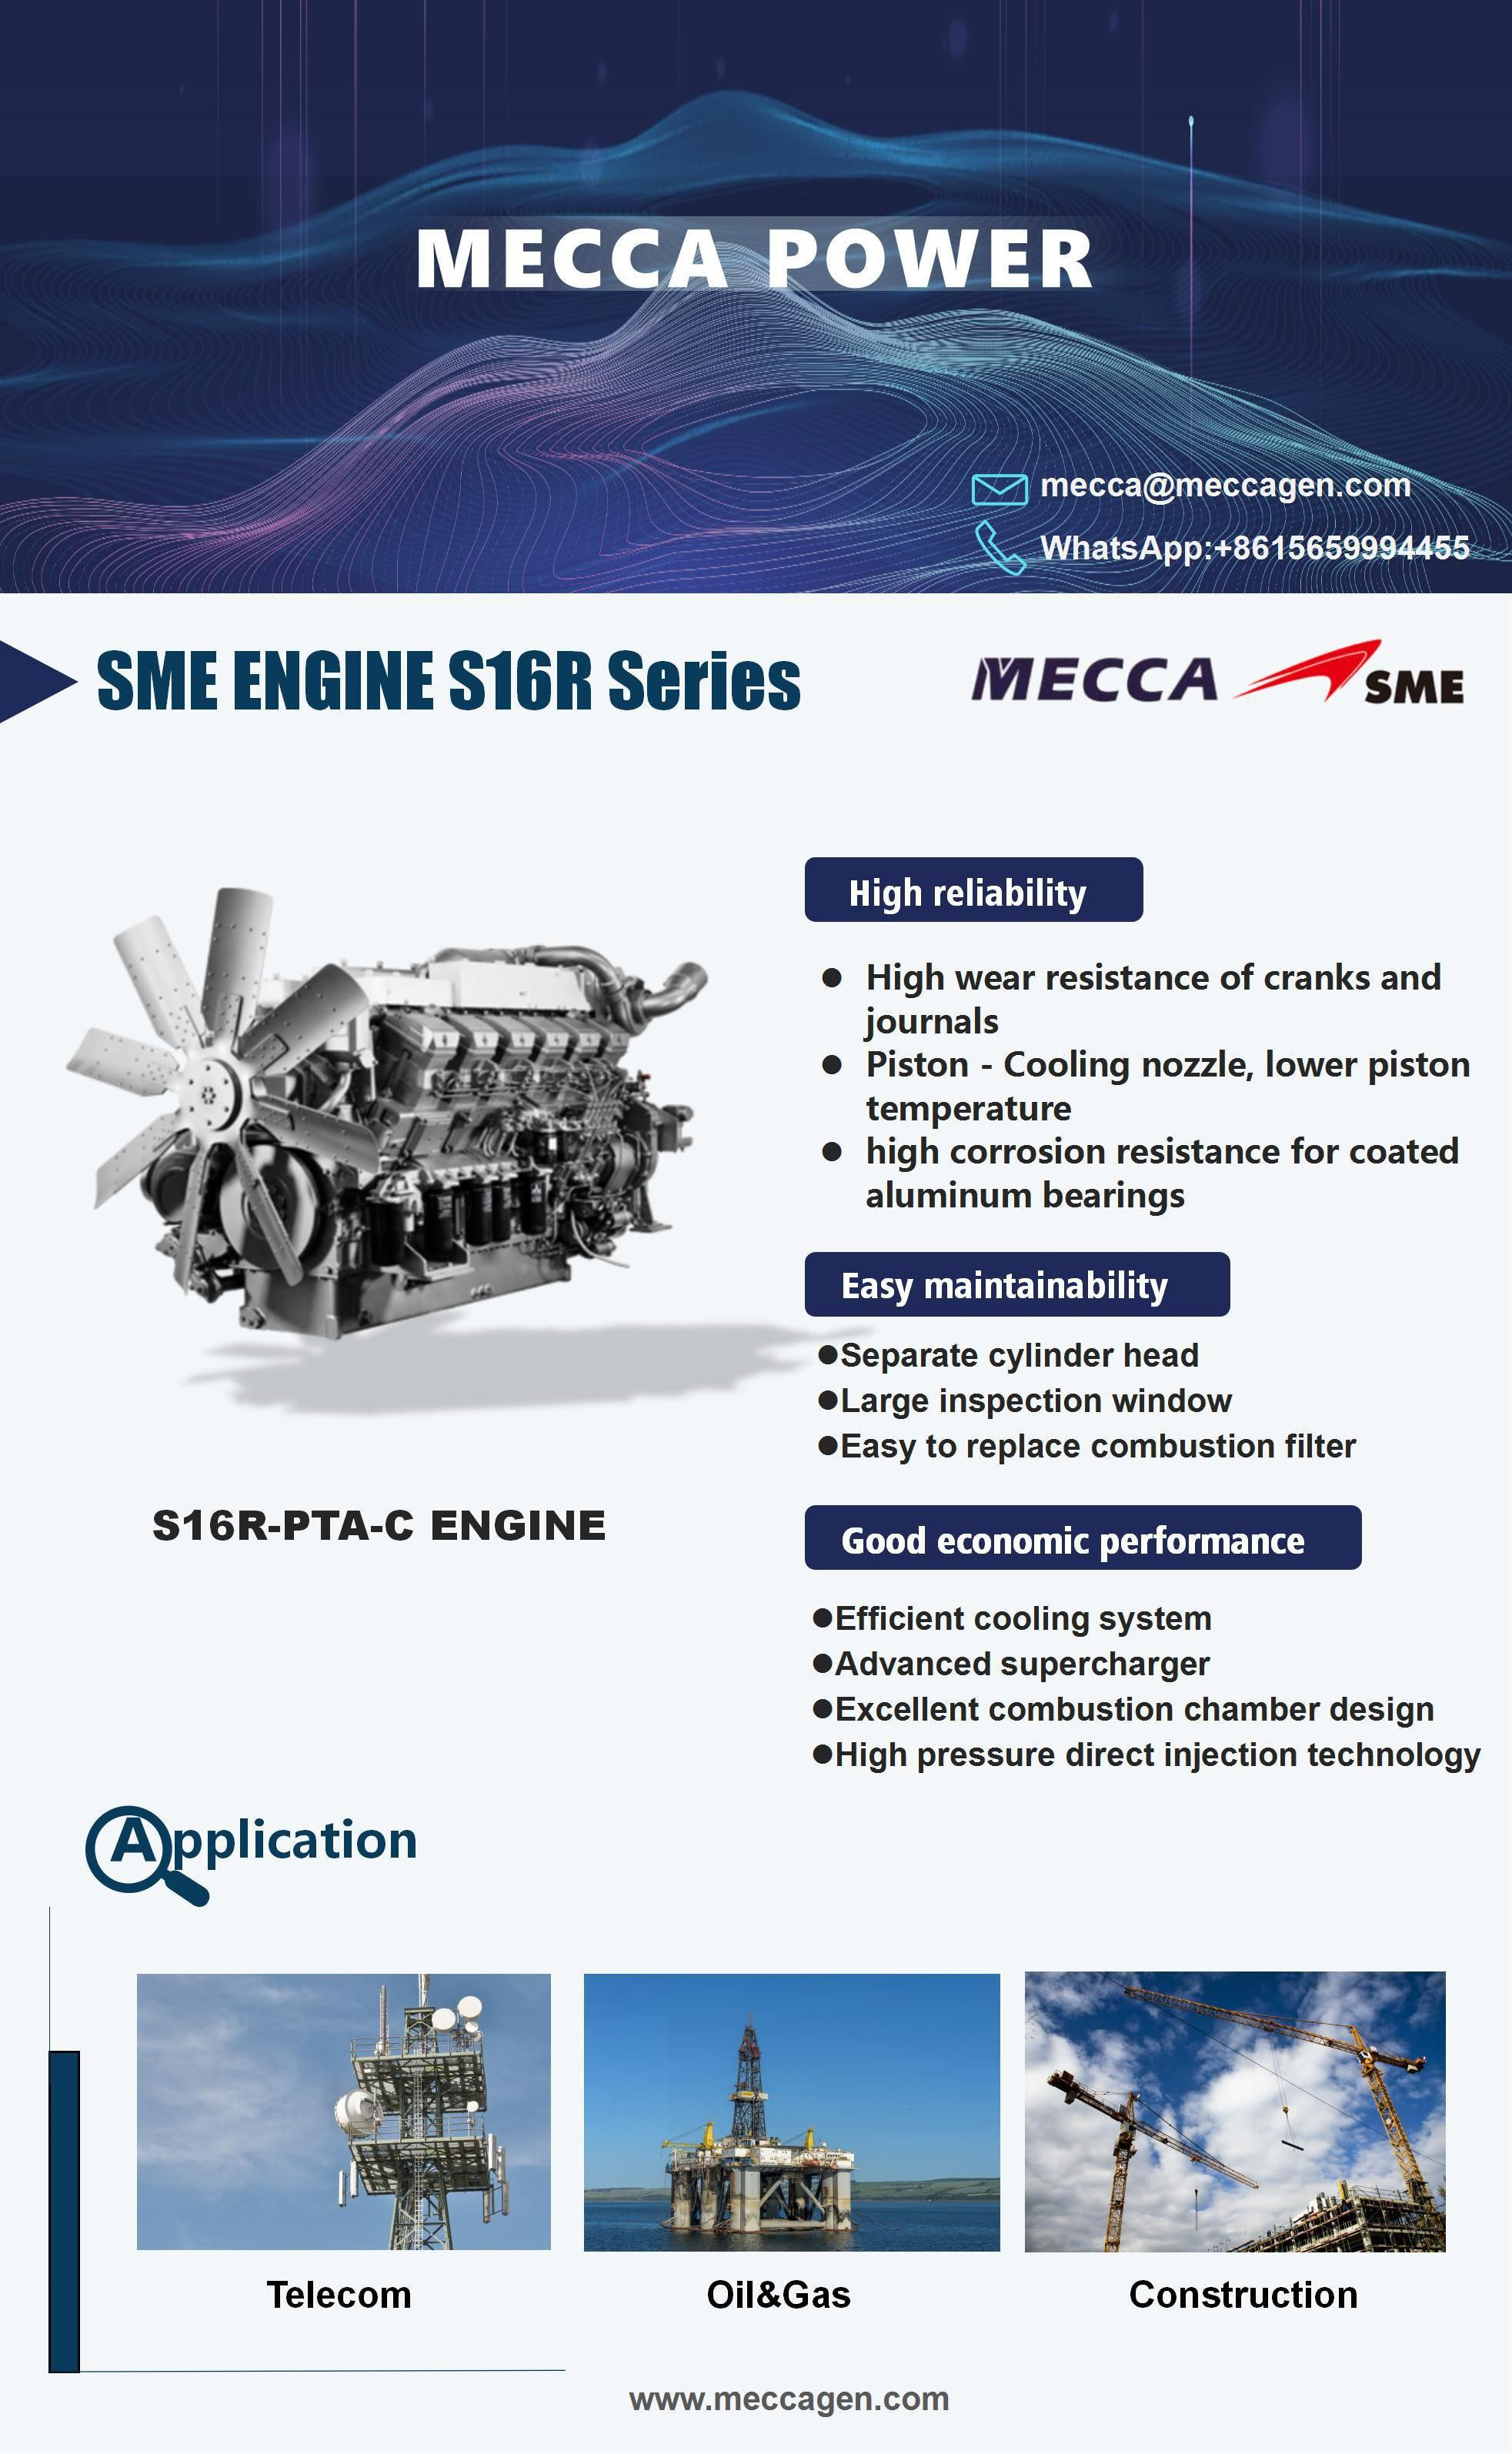 Mecca Power Sme Engine For Sale In 2021 Engines For Sale Diesel Generators Electric Generator